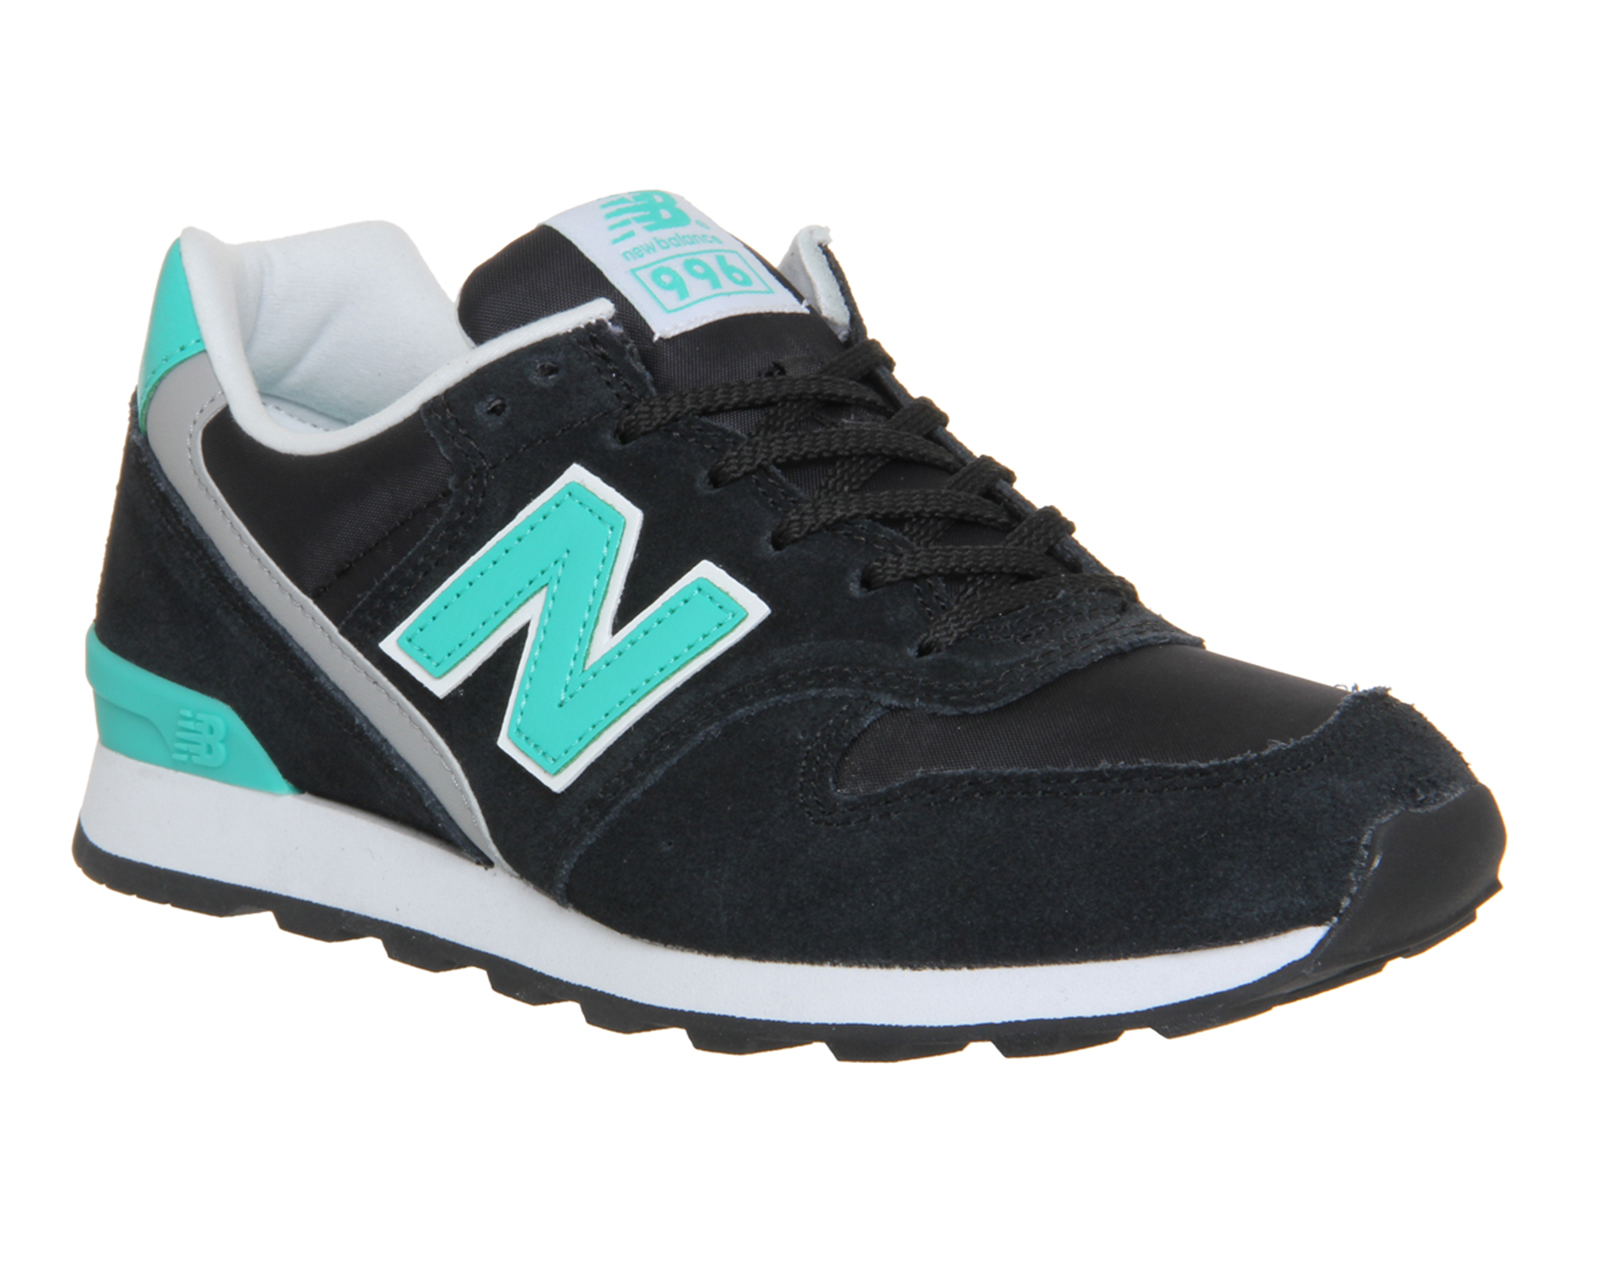 new balance black pool green exclusive